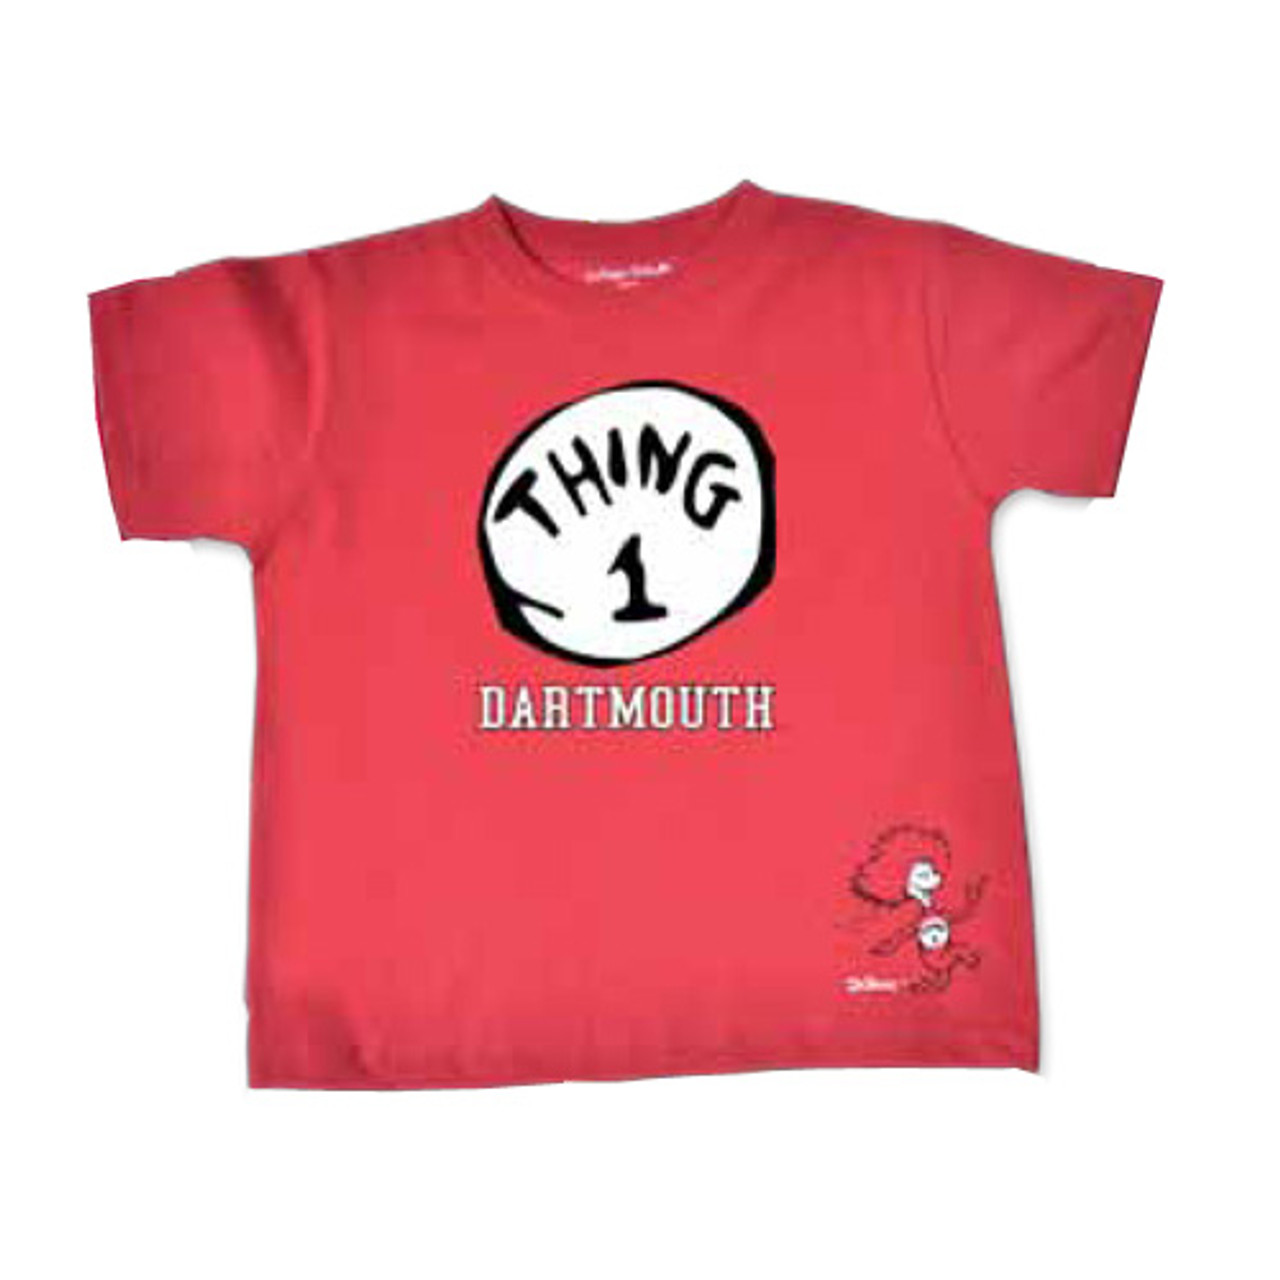 7a532936 Toddler red short sleeve tee with 'Thing 1' and 'Dartmouth' ...